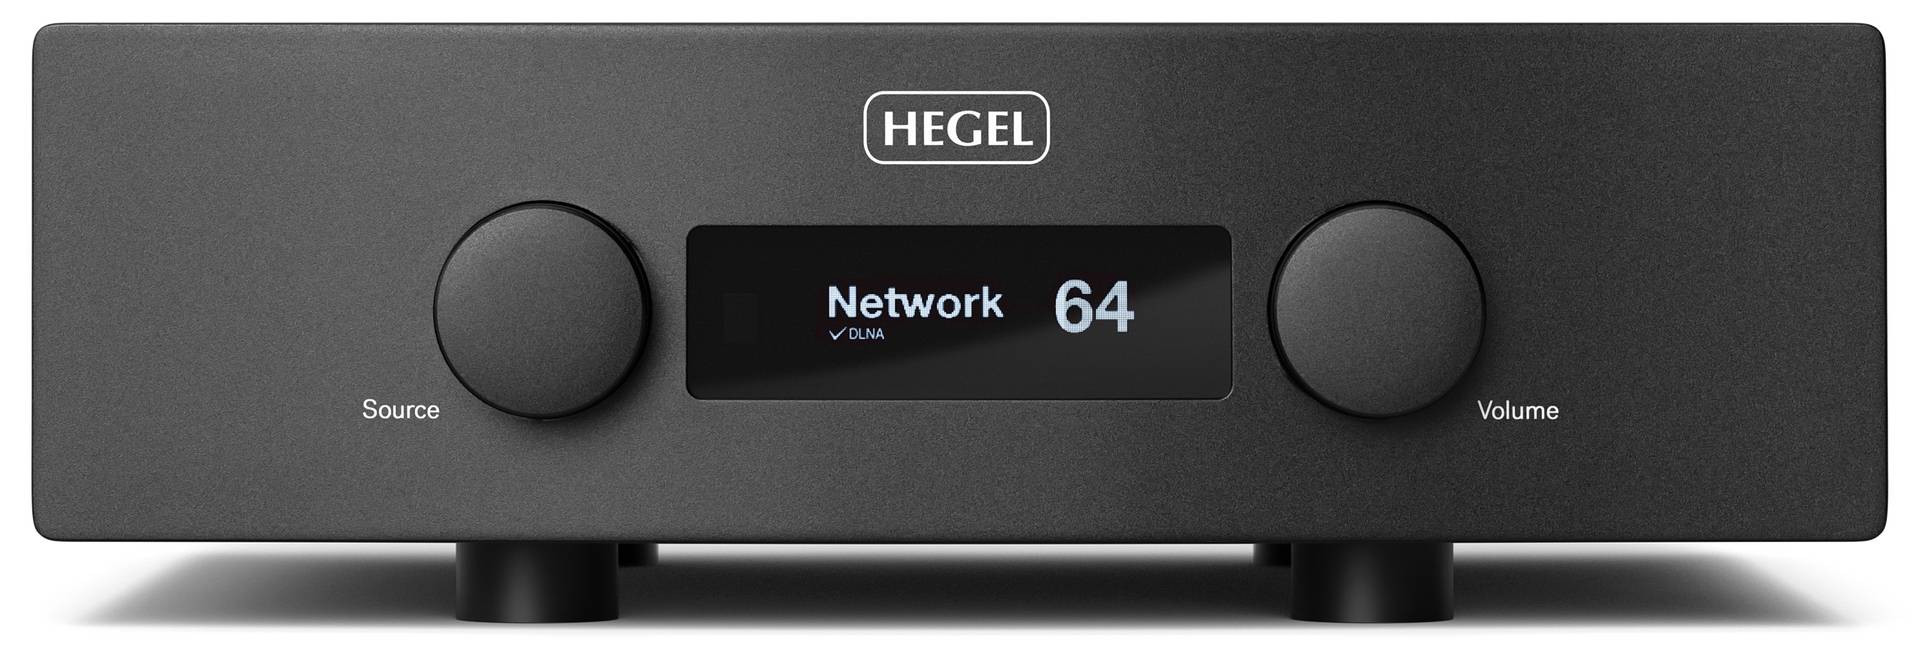 Hegel H390 Integrated Amp Dealer NJ.jpg